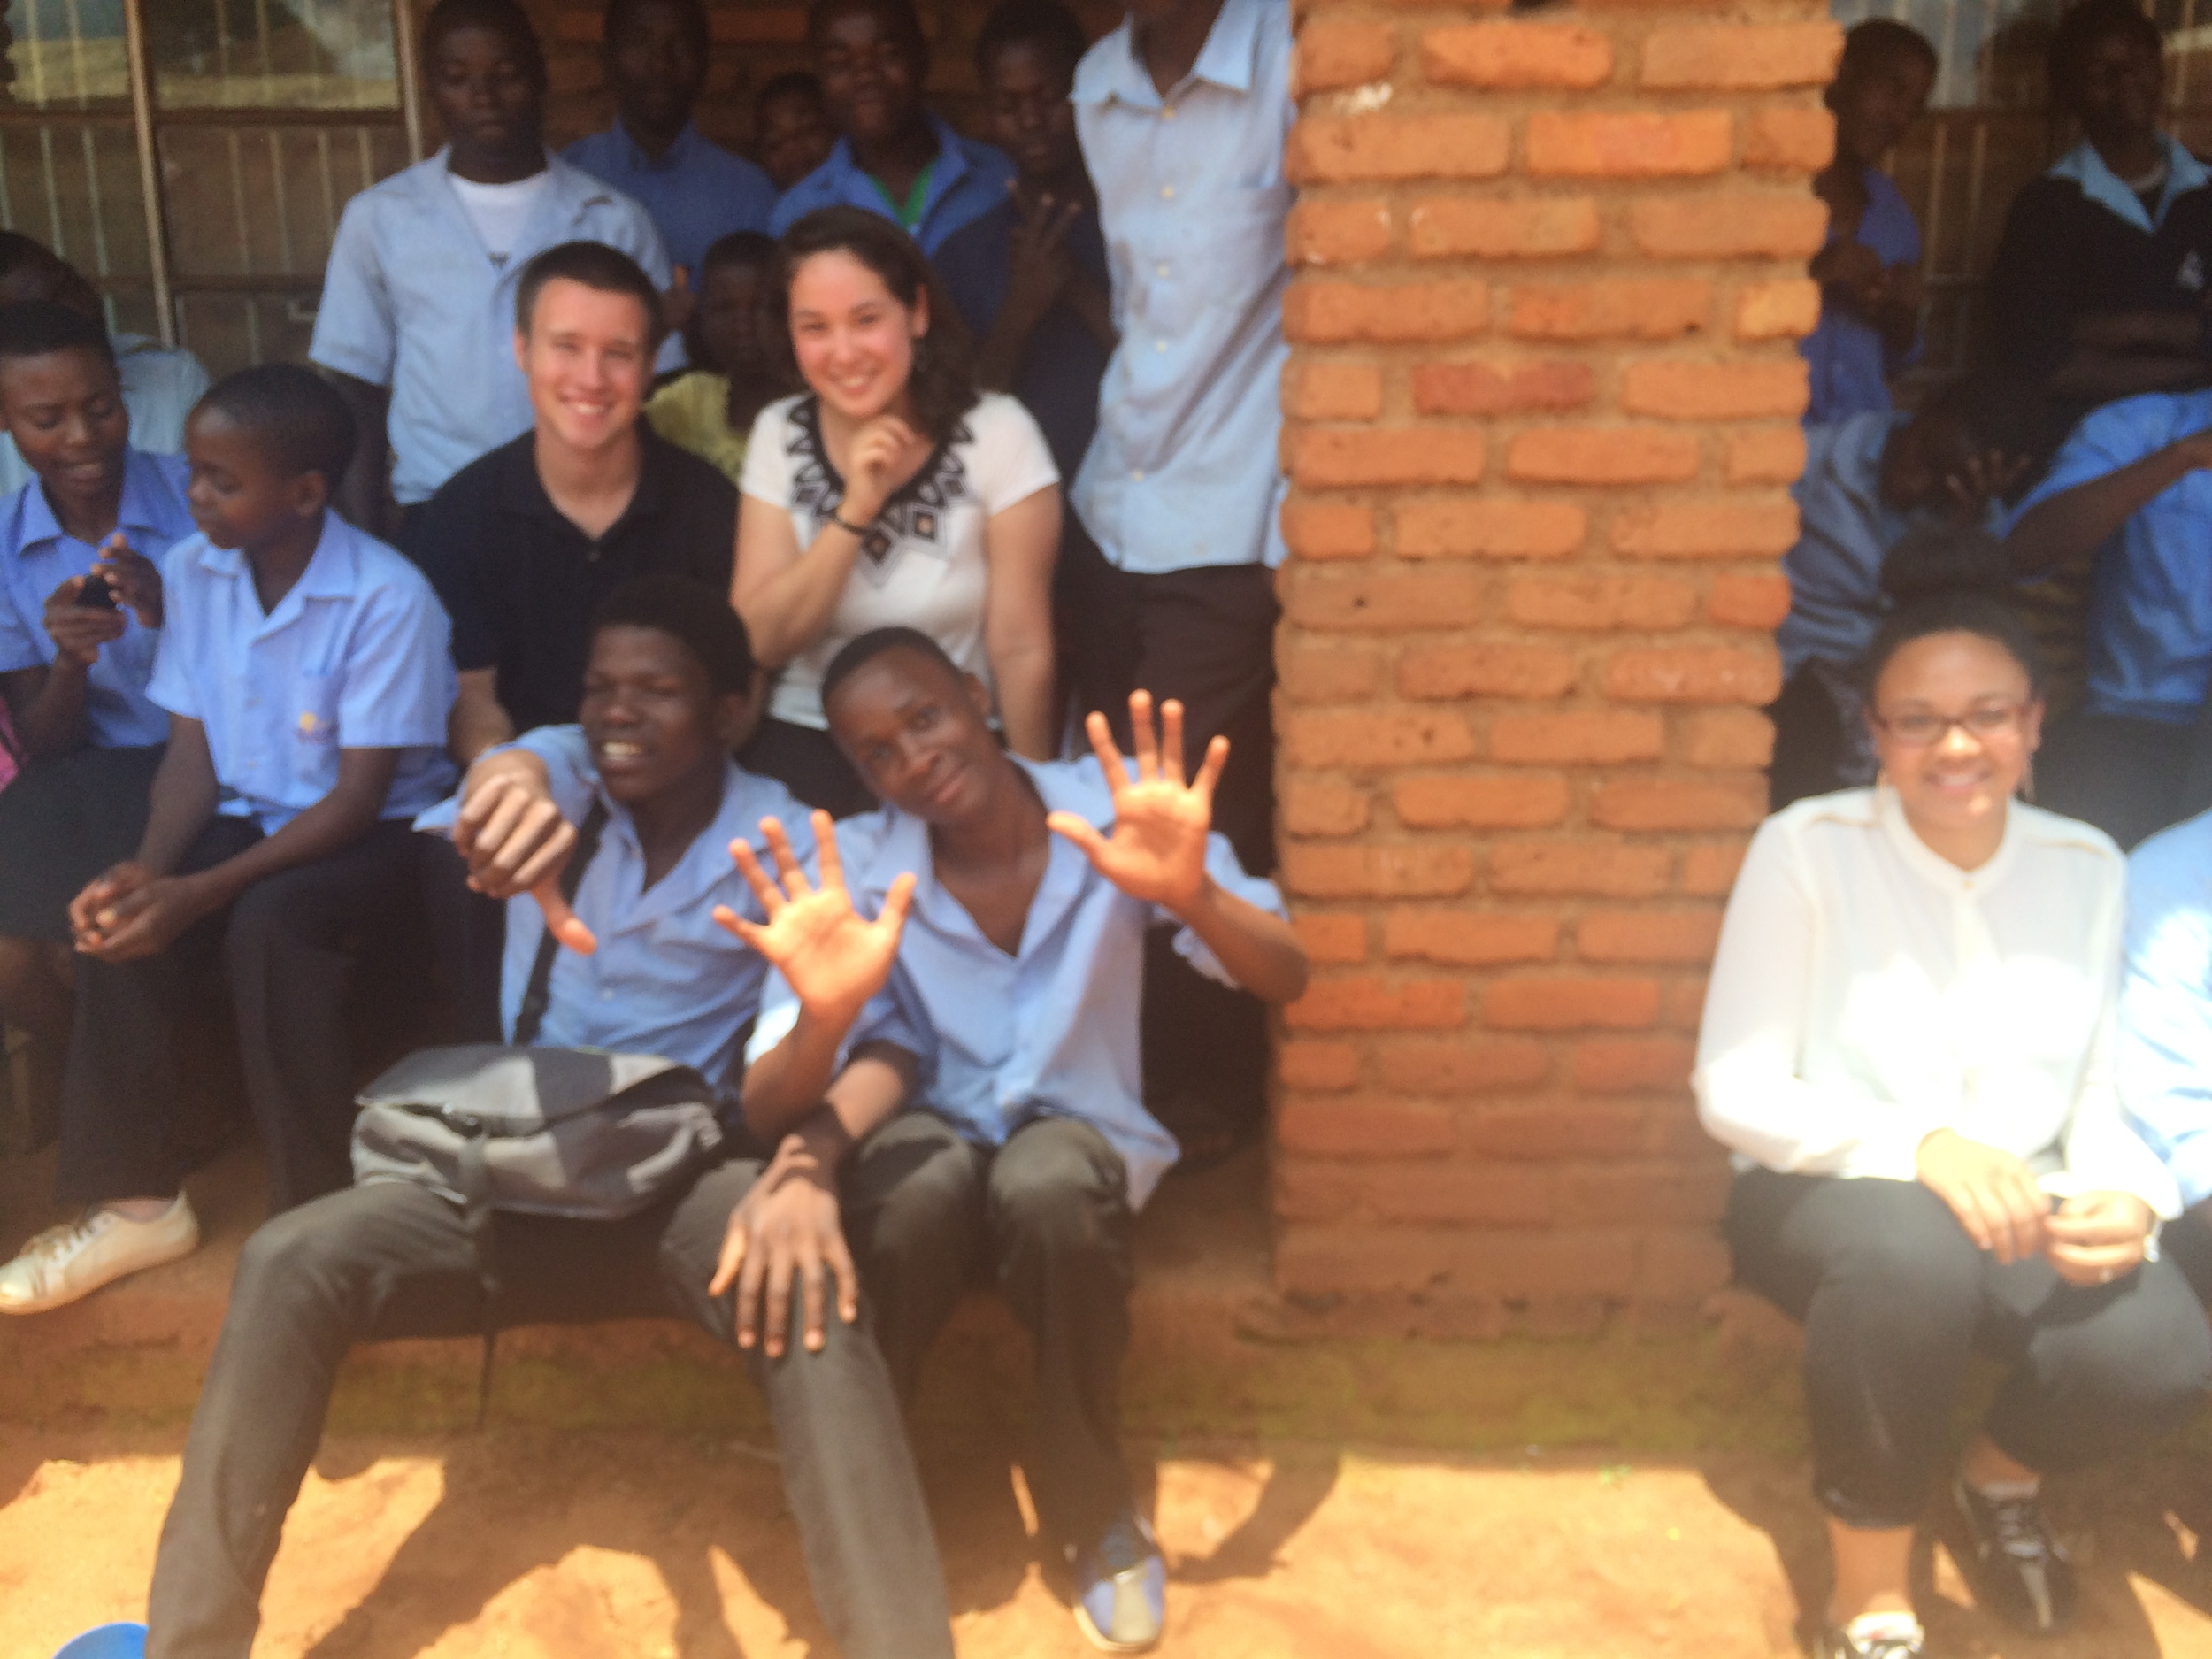 Amy, Austin and I with some of the students